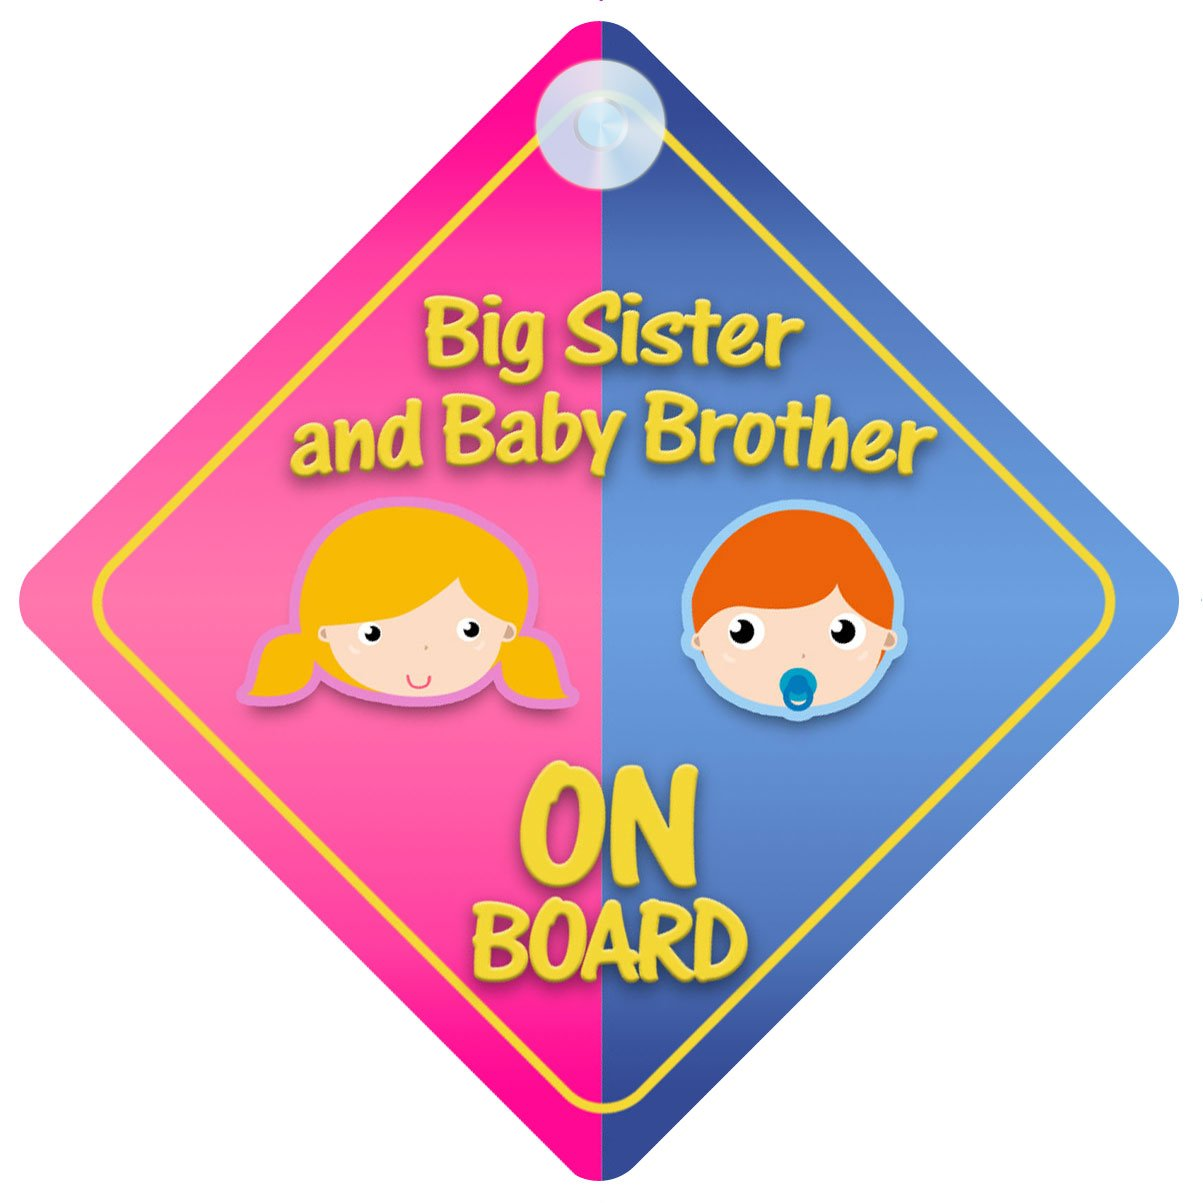 Gift Ideas For Big Sister At Baby Shower Part - 39: Amazon.com : Big Sister And Baby Brother On Board Car Sign New Baby / Child  Gift / Present / Baby Shower Surprise : Baby